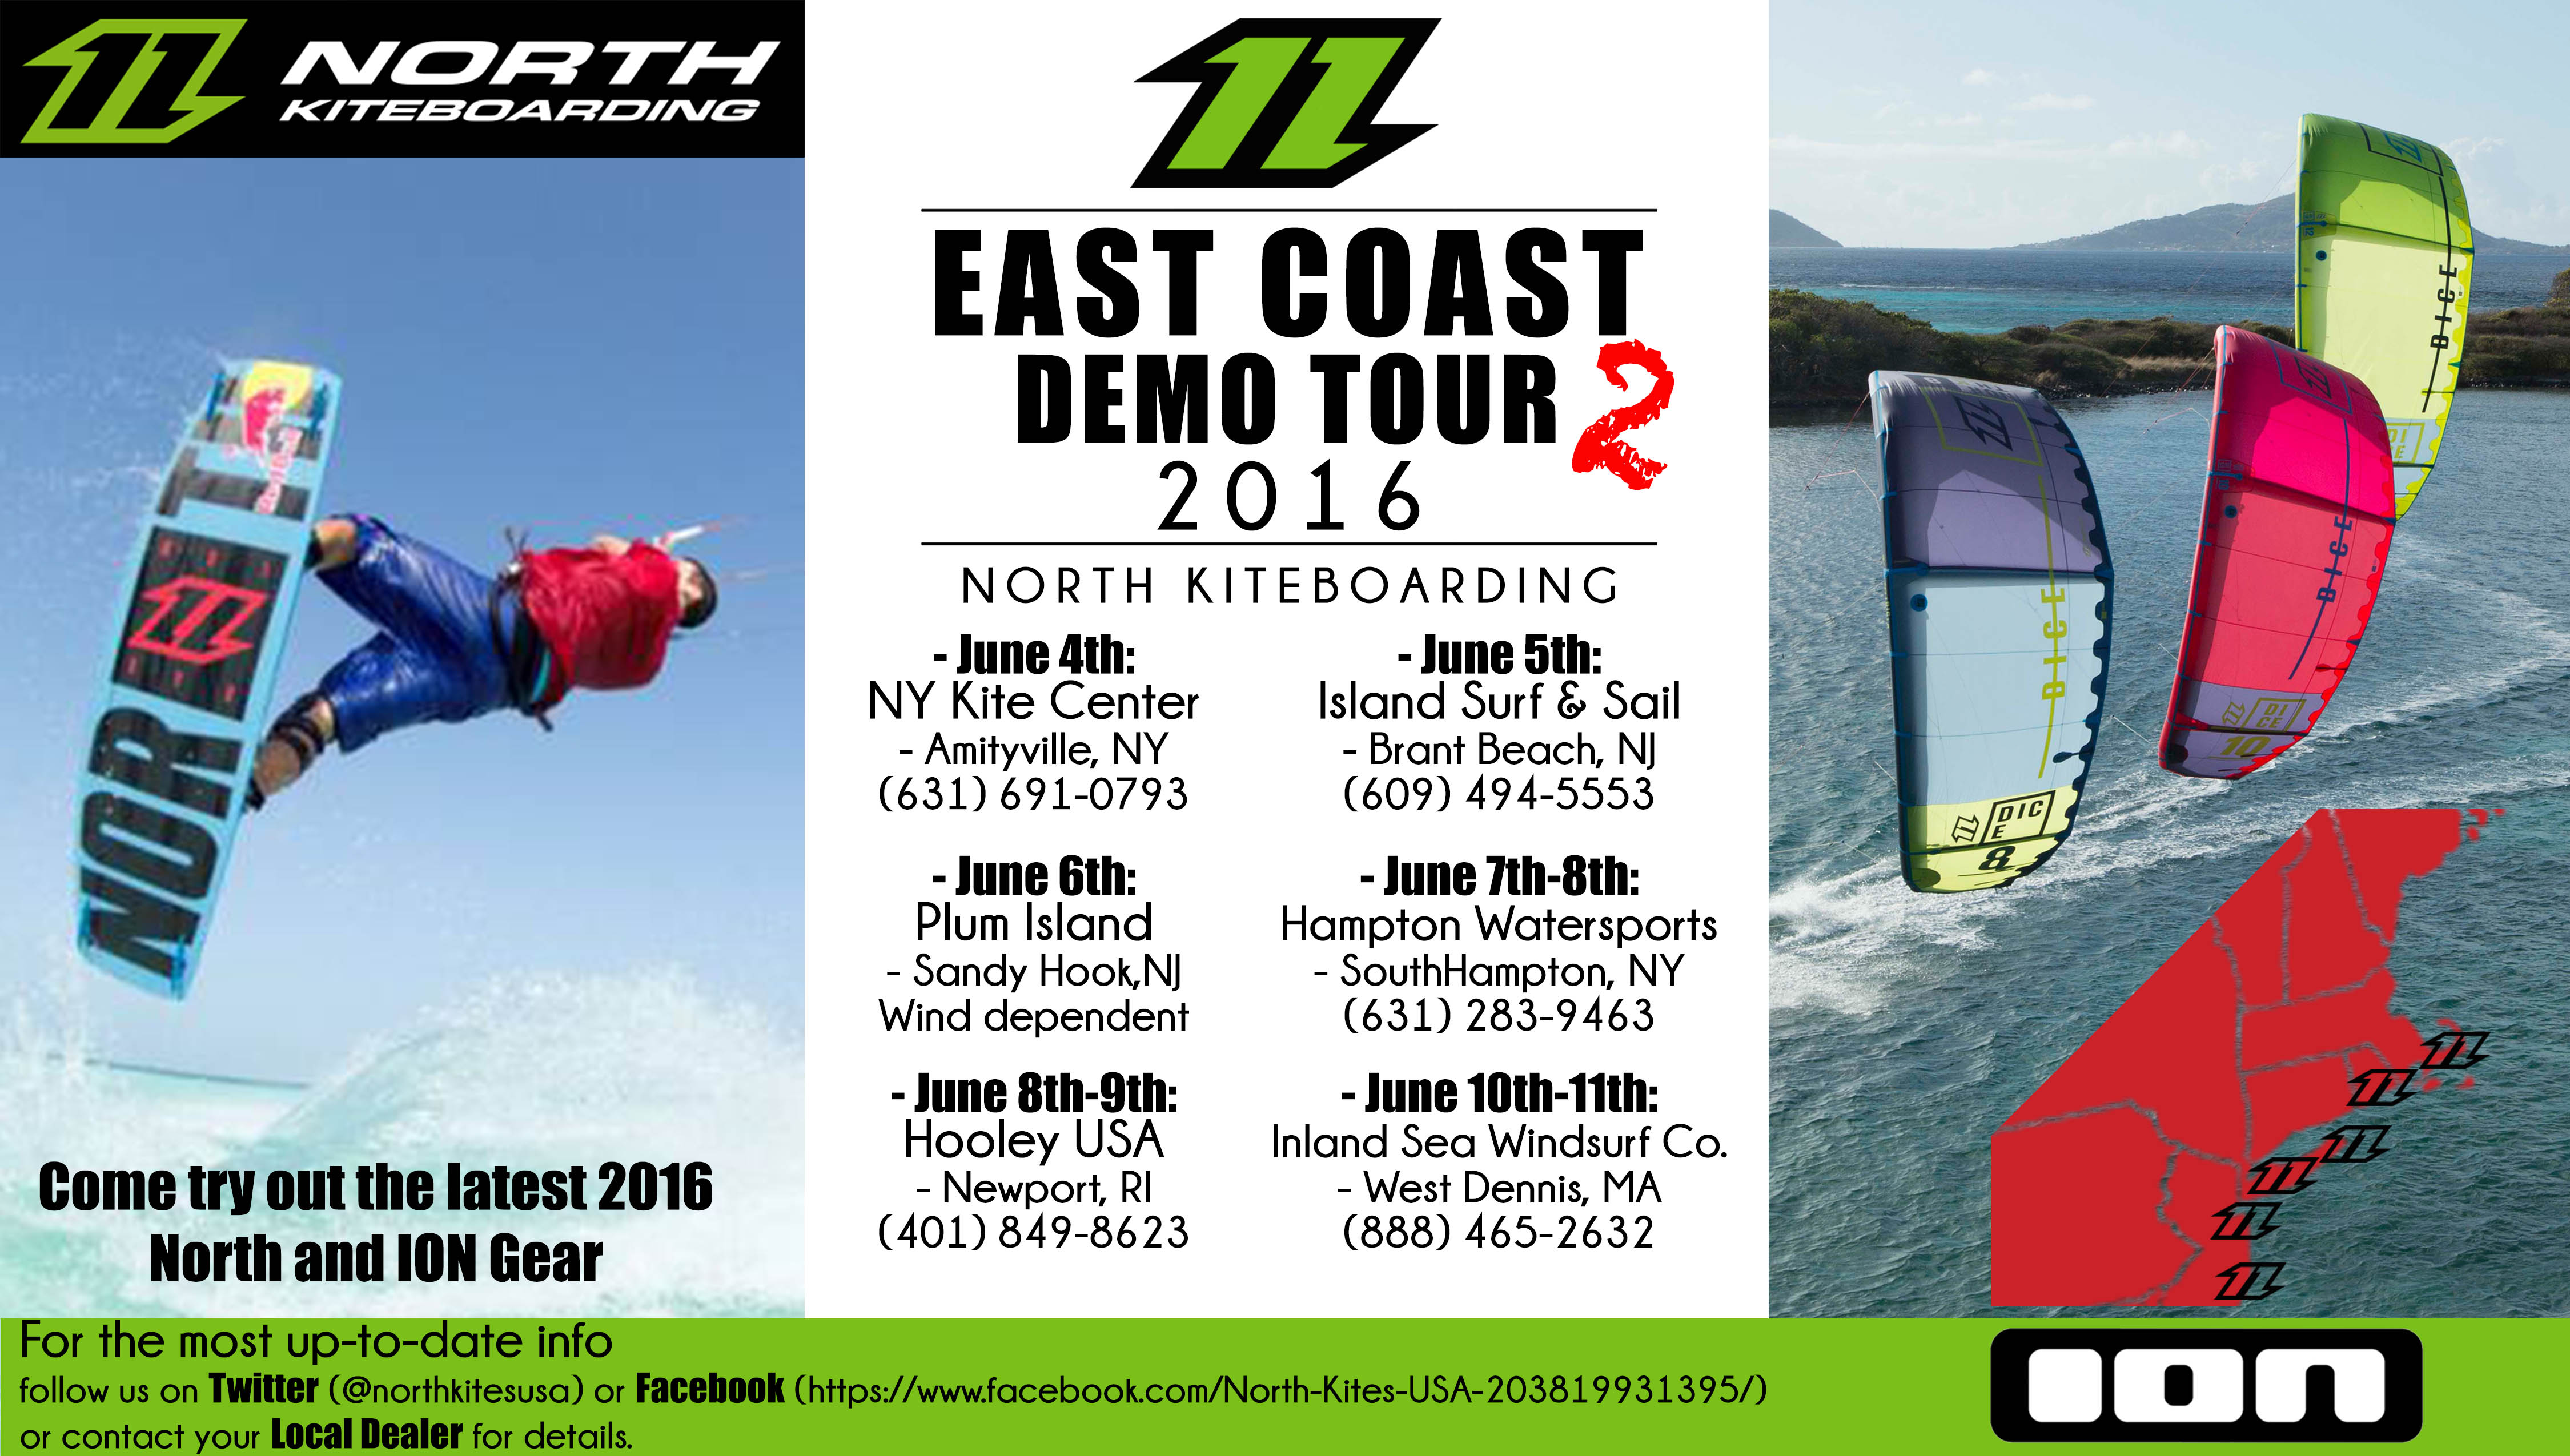 East coast demo tour  (3).jpg